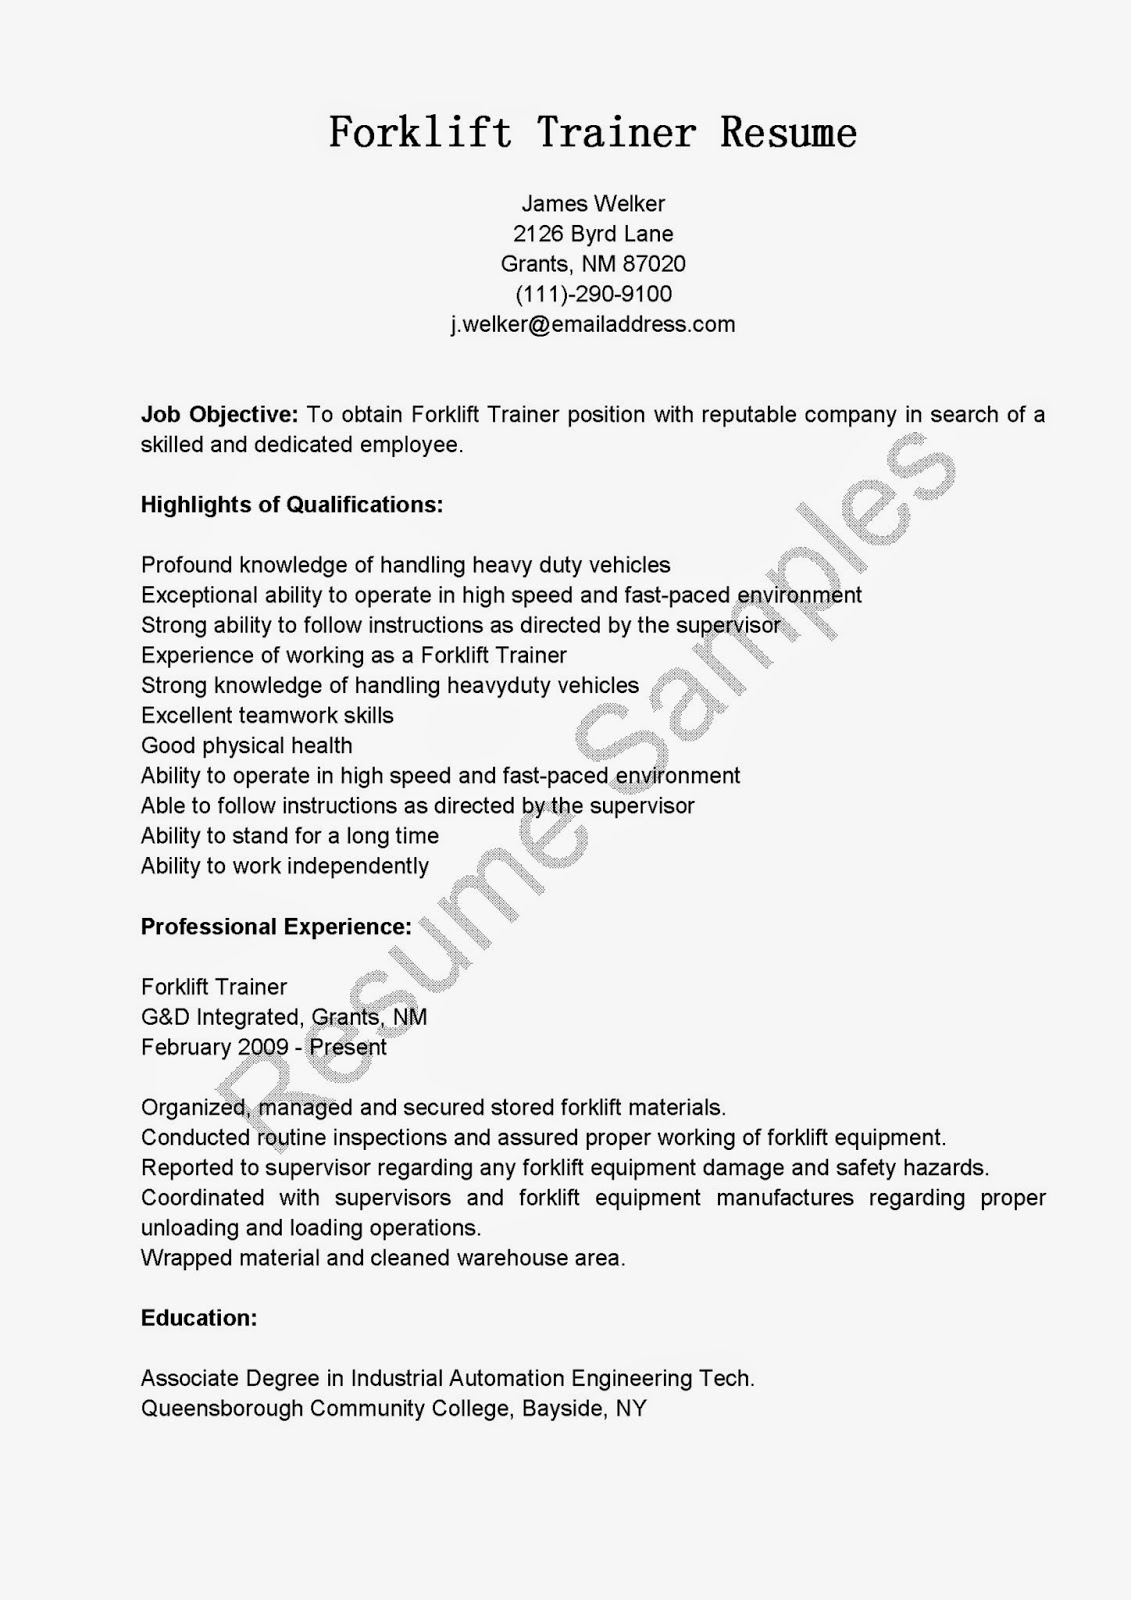 forklift resume sample resume samples forklift trainer sample driver - Forklift Operator Resume Sample